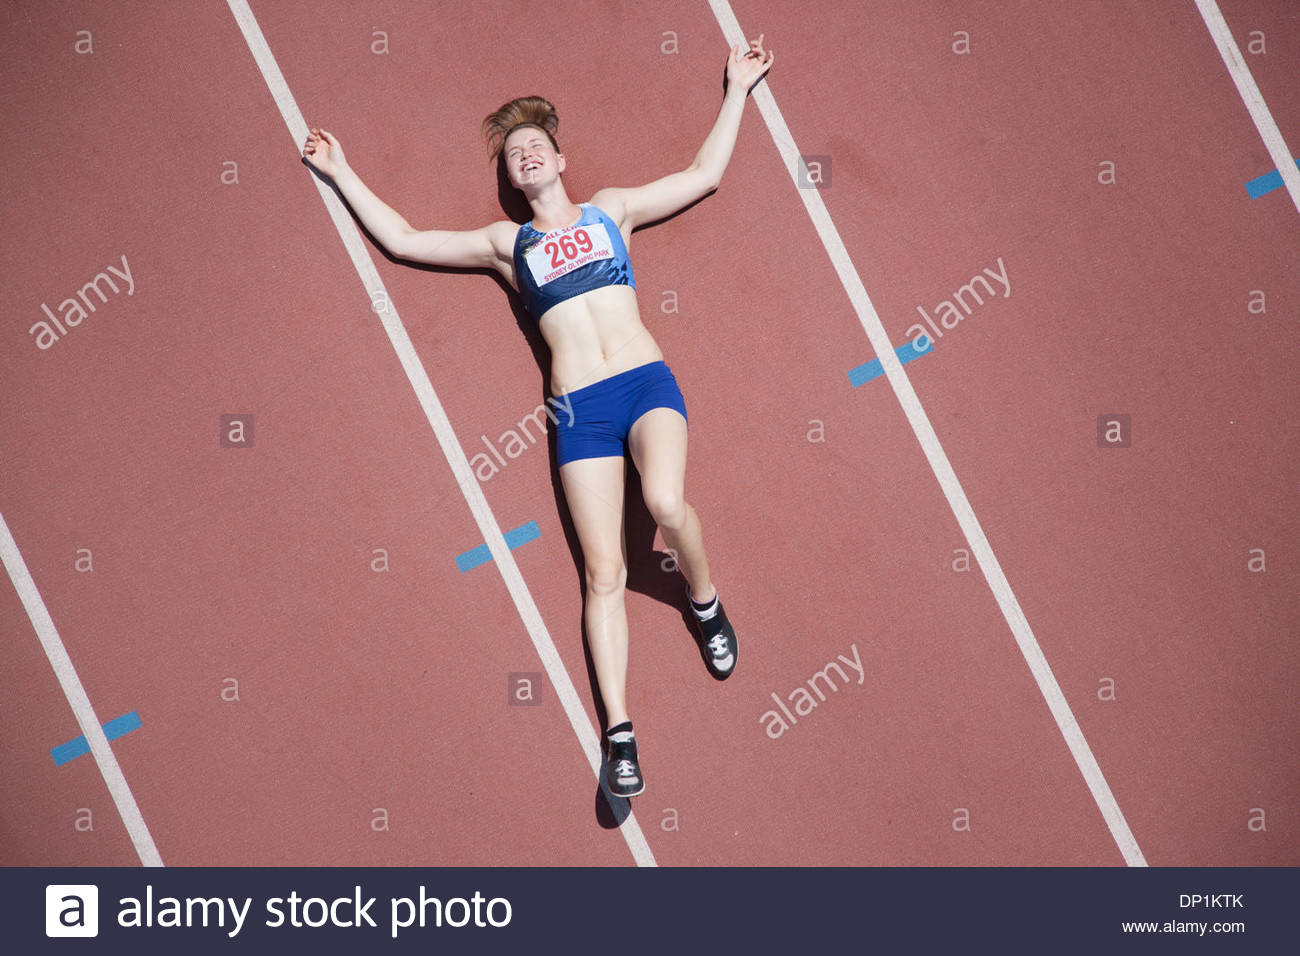 Tired runner laying on track - Stock Image